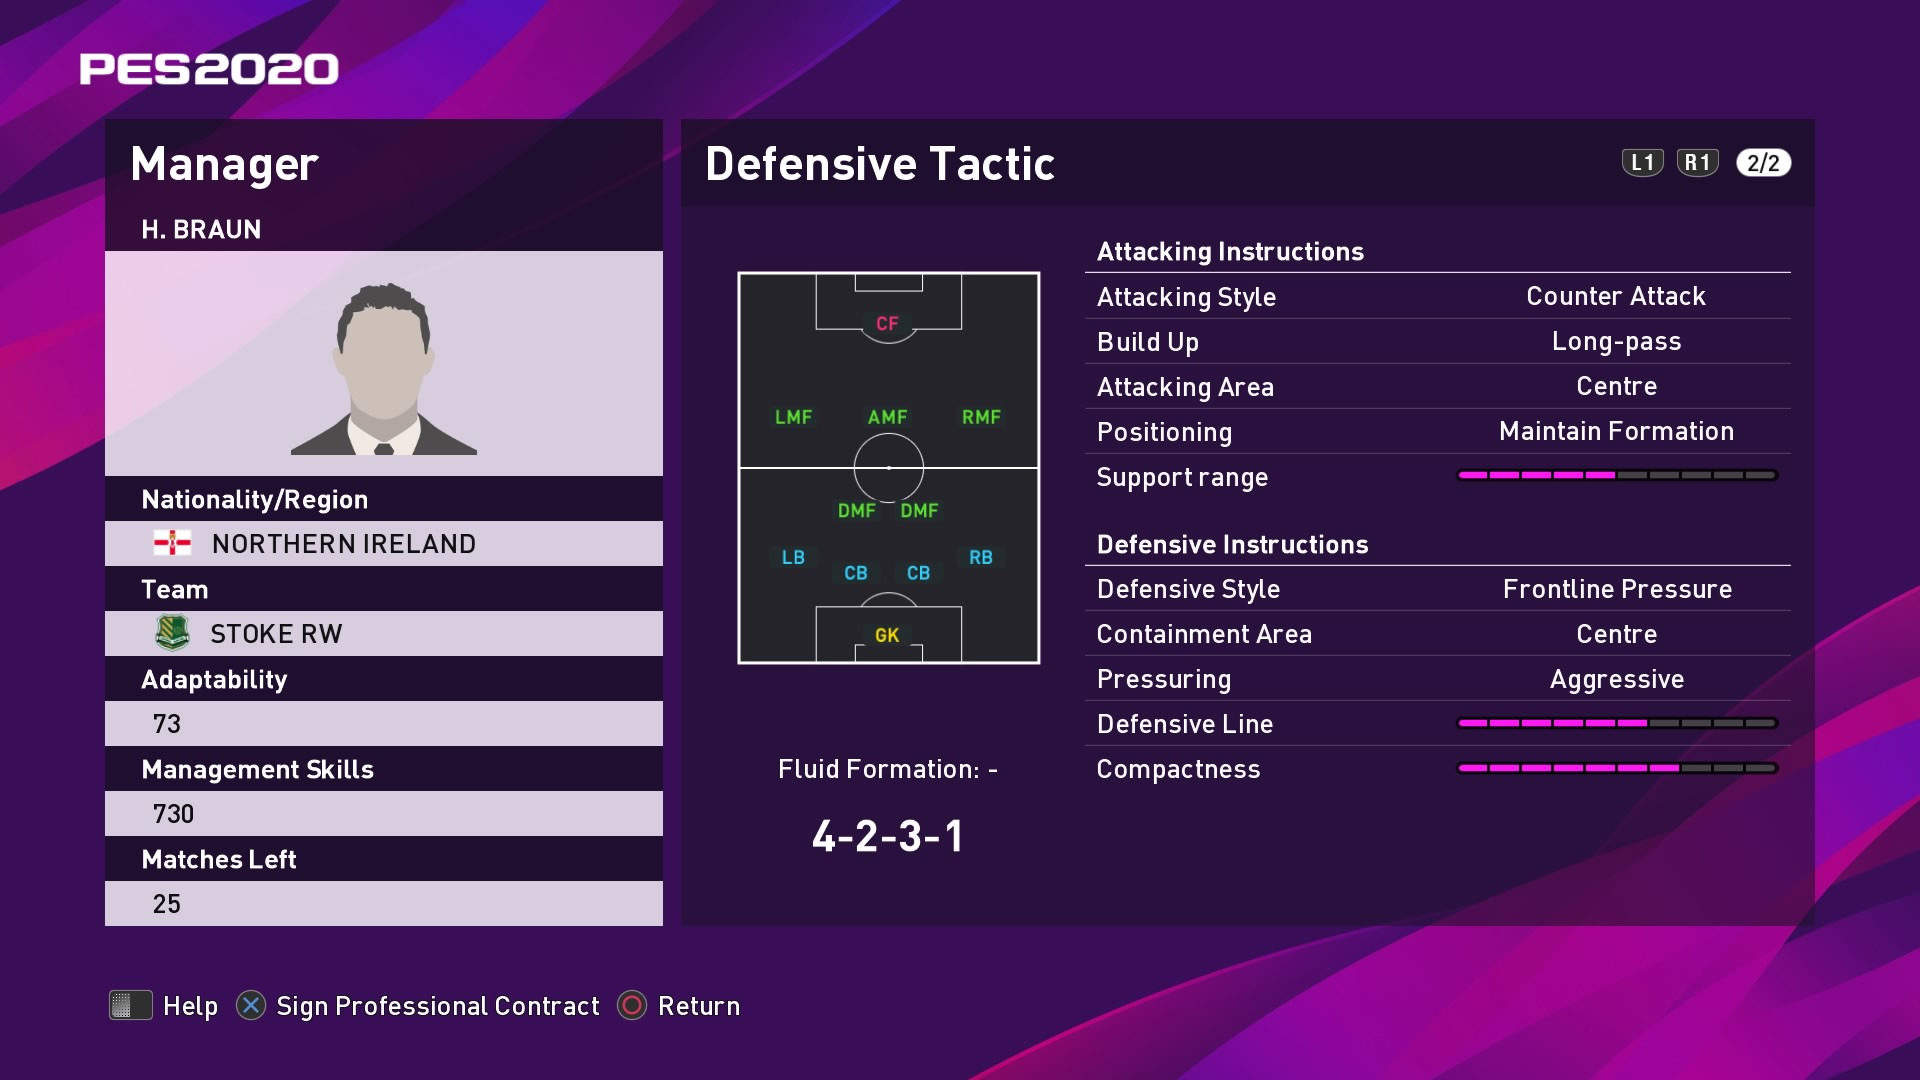 H. Braun (2) (Michael O'Neill) Defensive Tactic in PES 2020 myClub